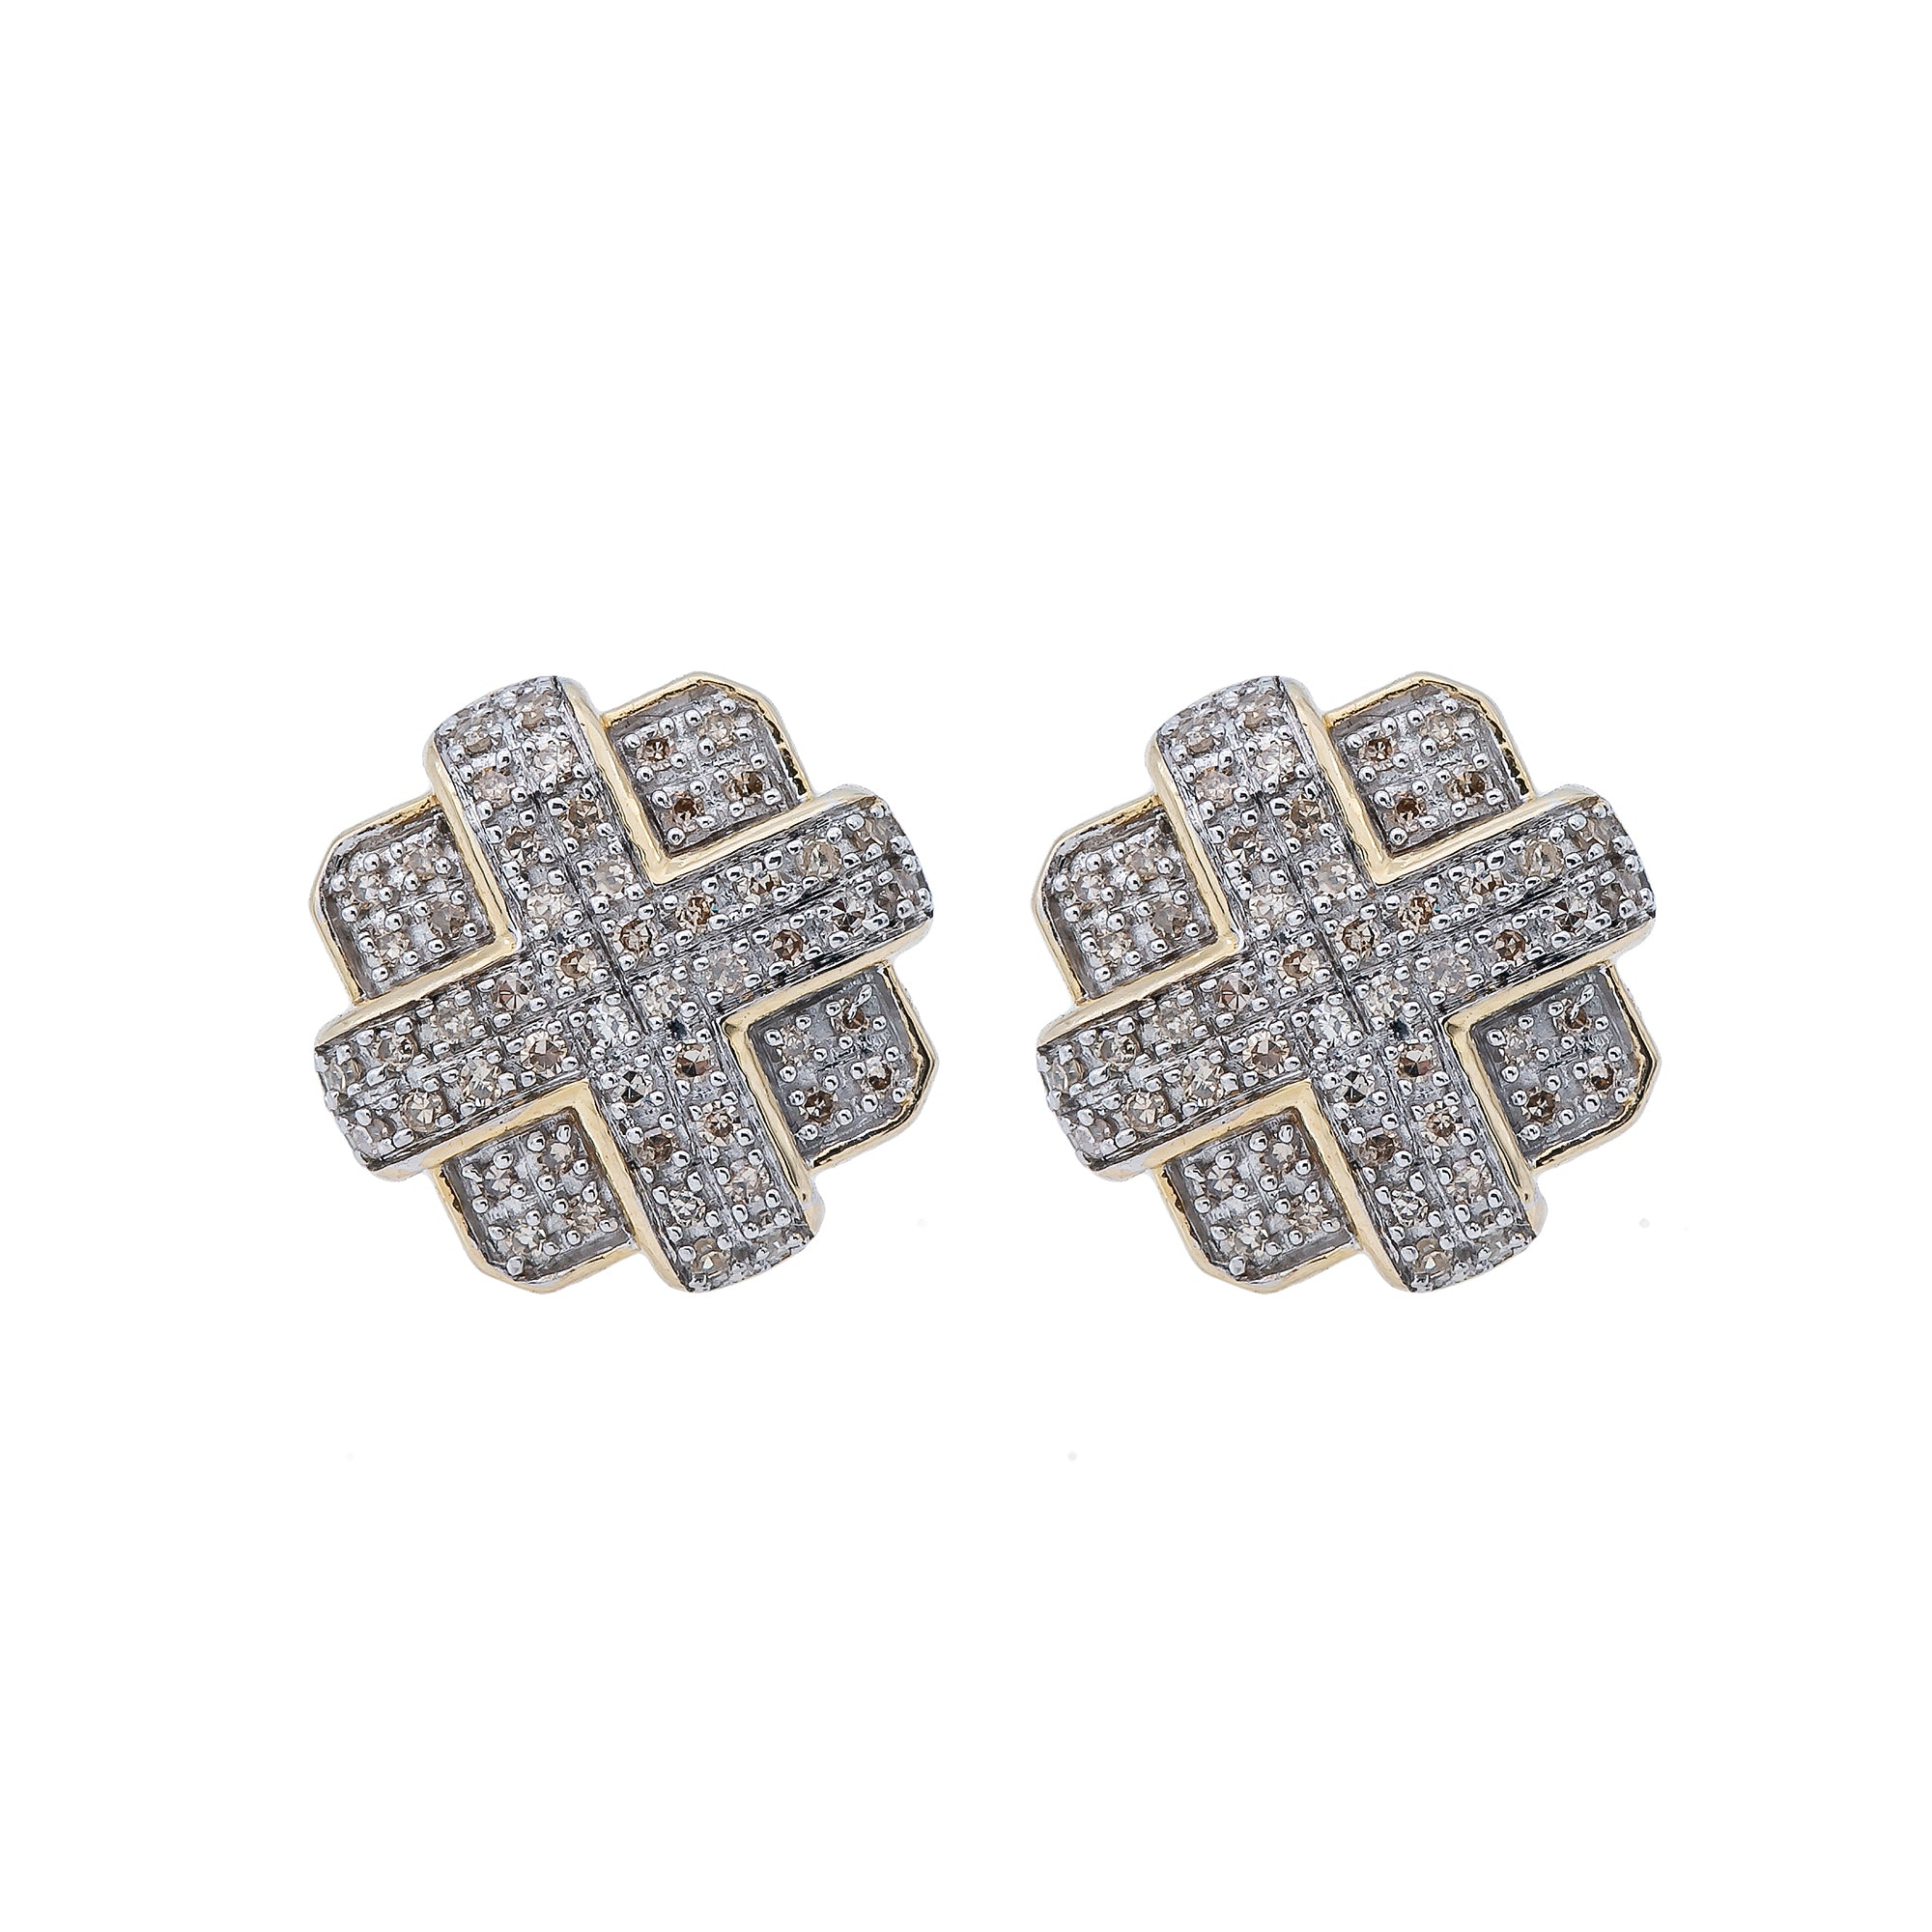 10K Yellow Gold Unisex Earrings with 0.39 CT Diamond